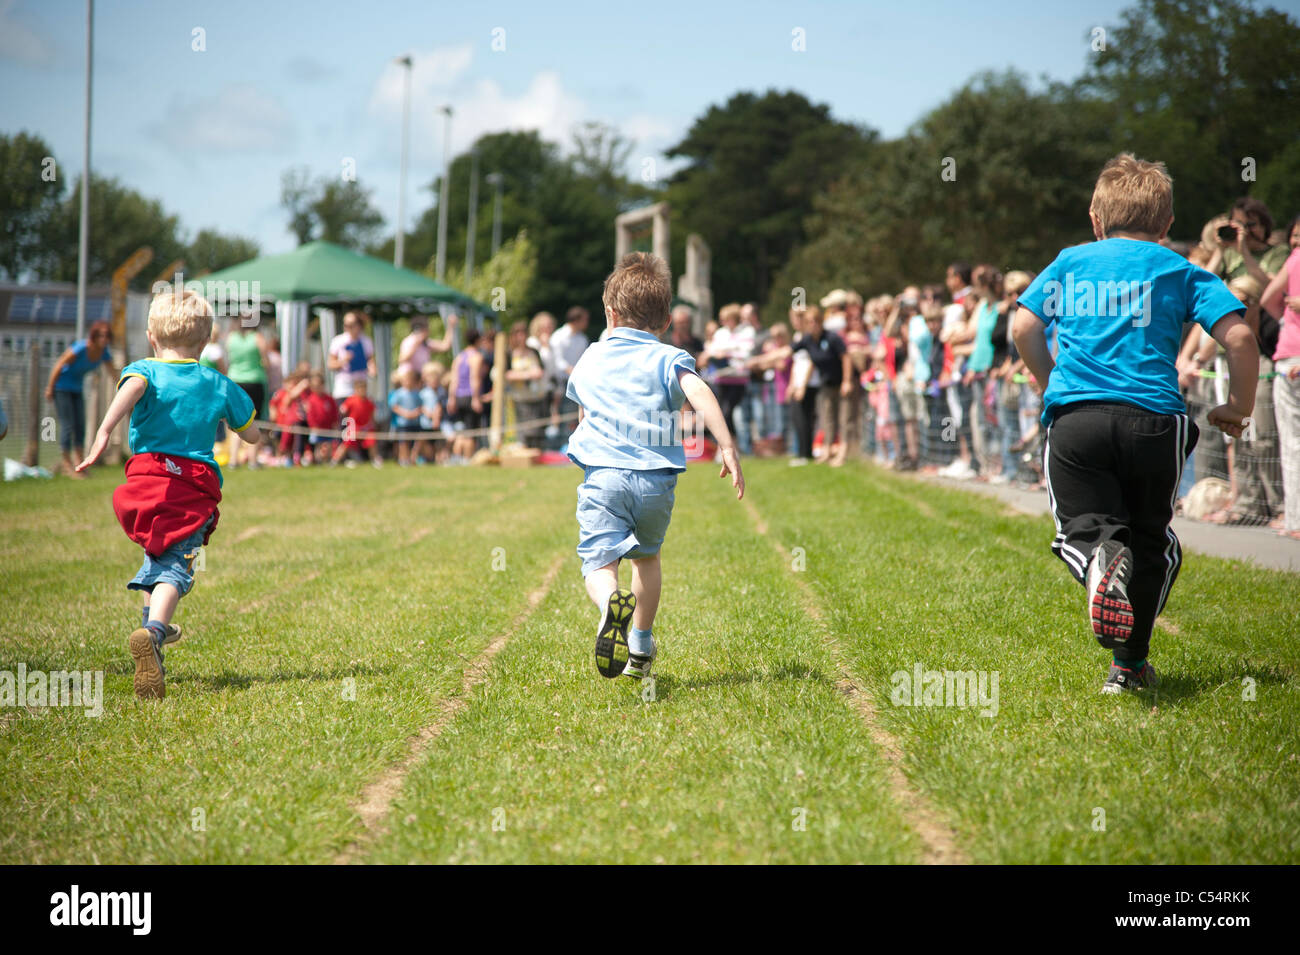 Young small boys racing at the annual School sports day at a small primary school, UK Stock Photo